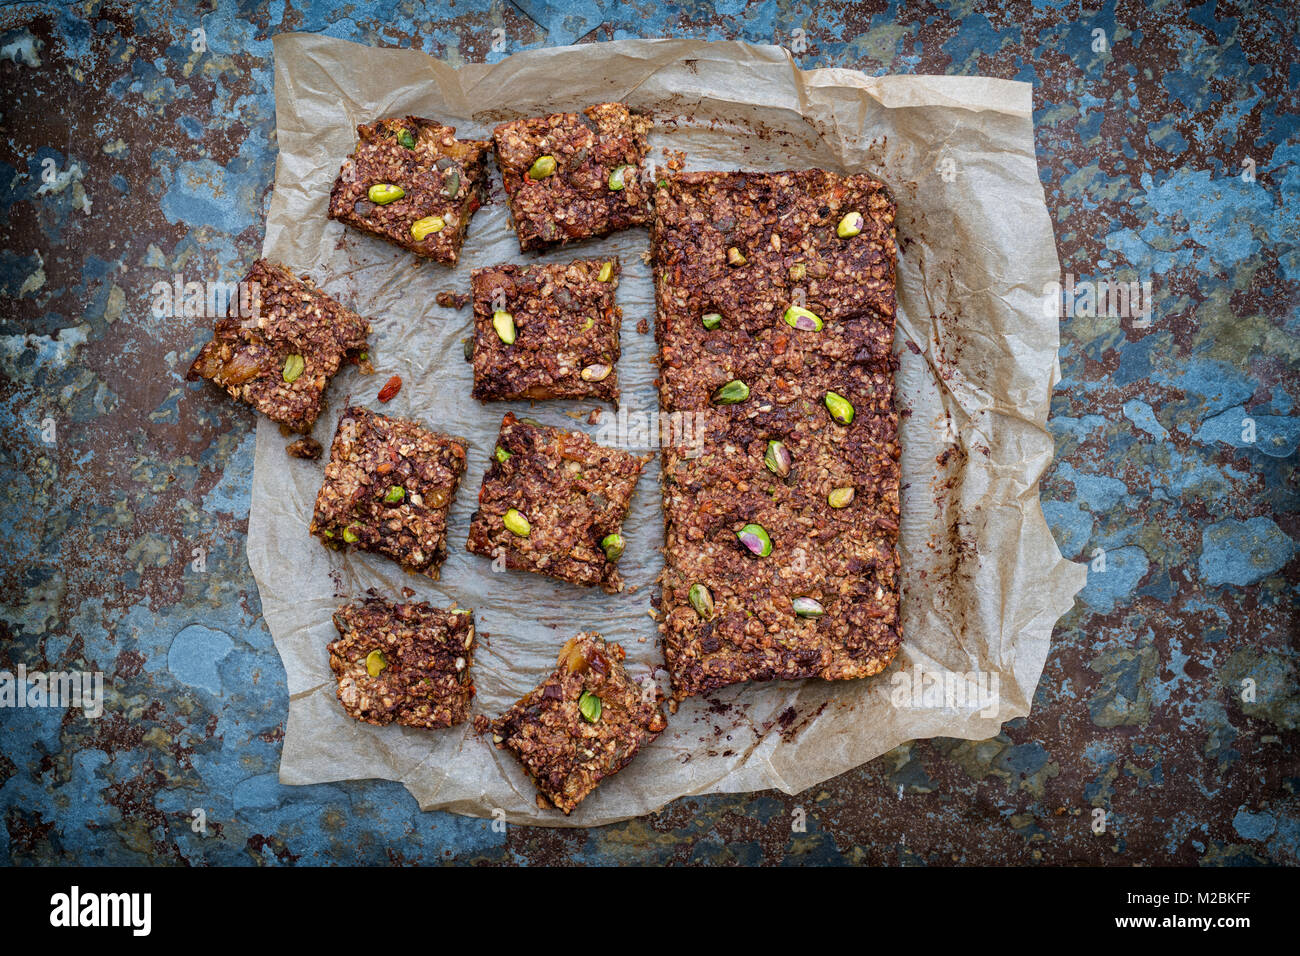 Homemade seed, nut, dried fruit and dark chocolate Oat Energy bars on baking parchment on slate background - Stock Image